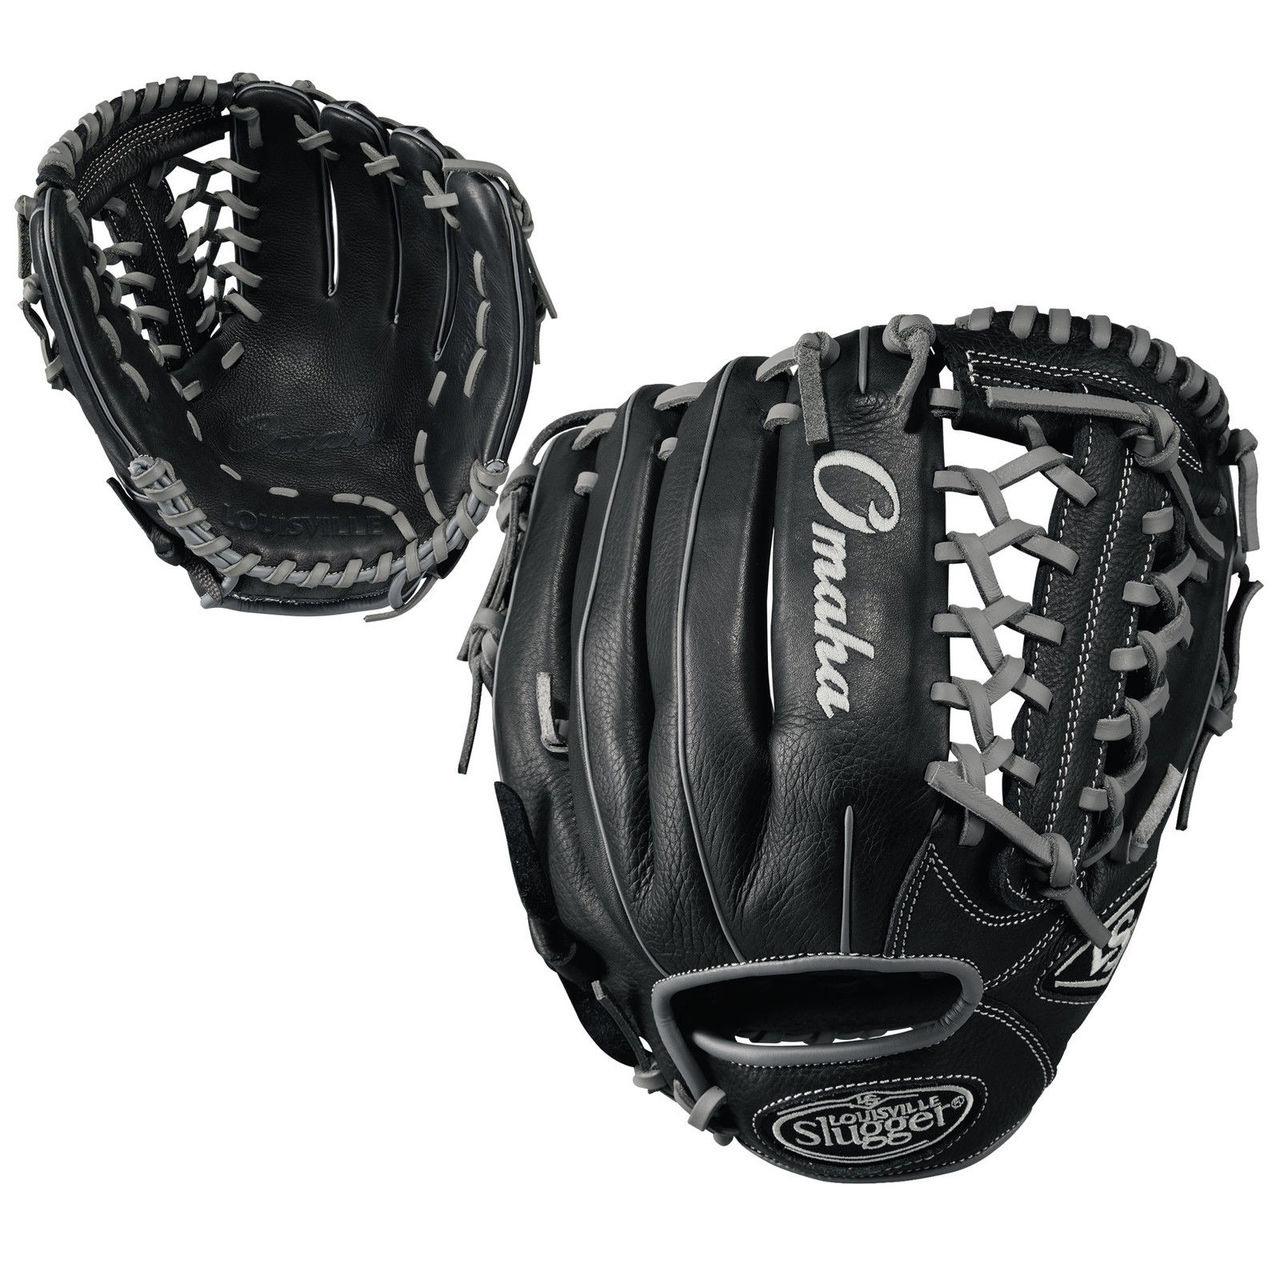 louisville-slugger-omaha-11-75-inch-omrb171175-baseball-glove-right-hand-throw OMRB171175-RightHandThrow  887768498559 Designed with the young avid travel baseball player in mind the